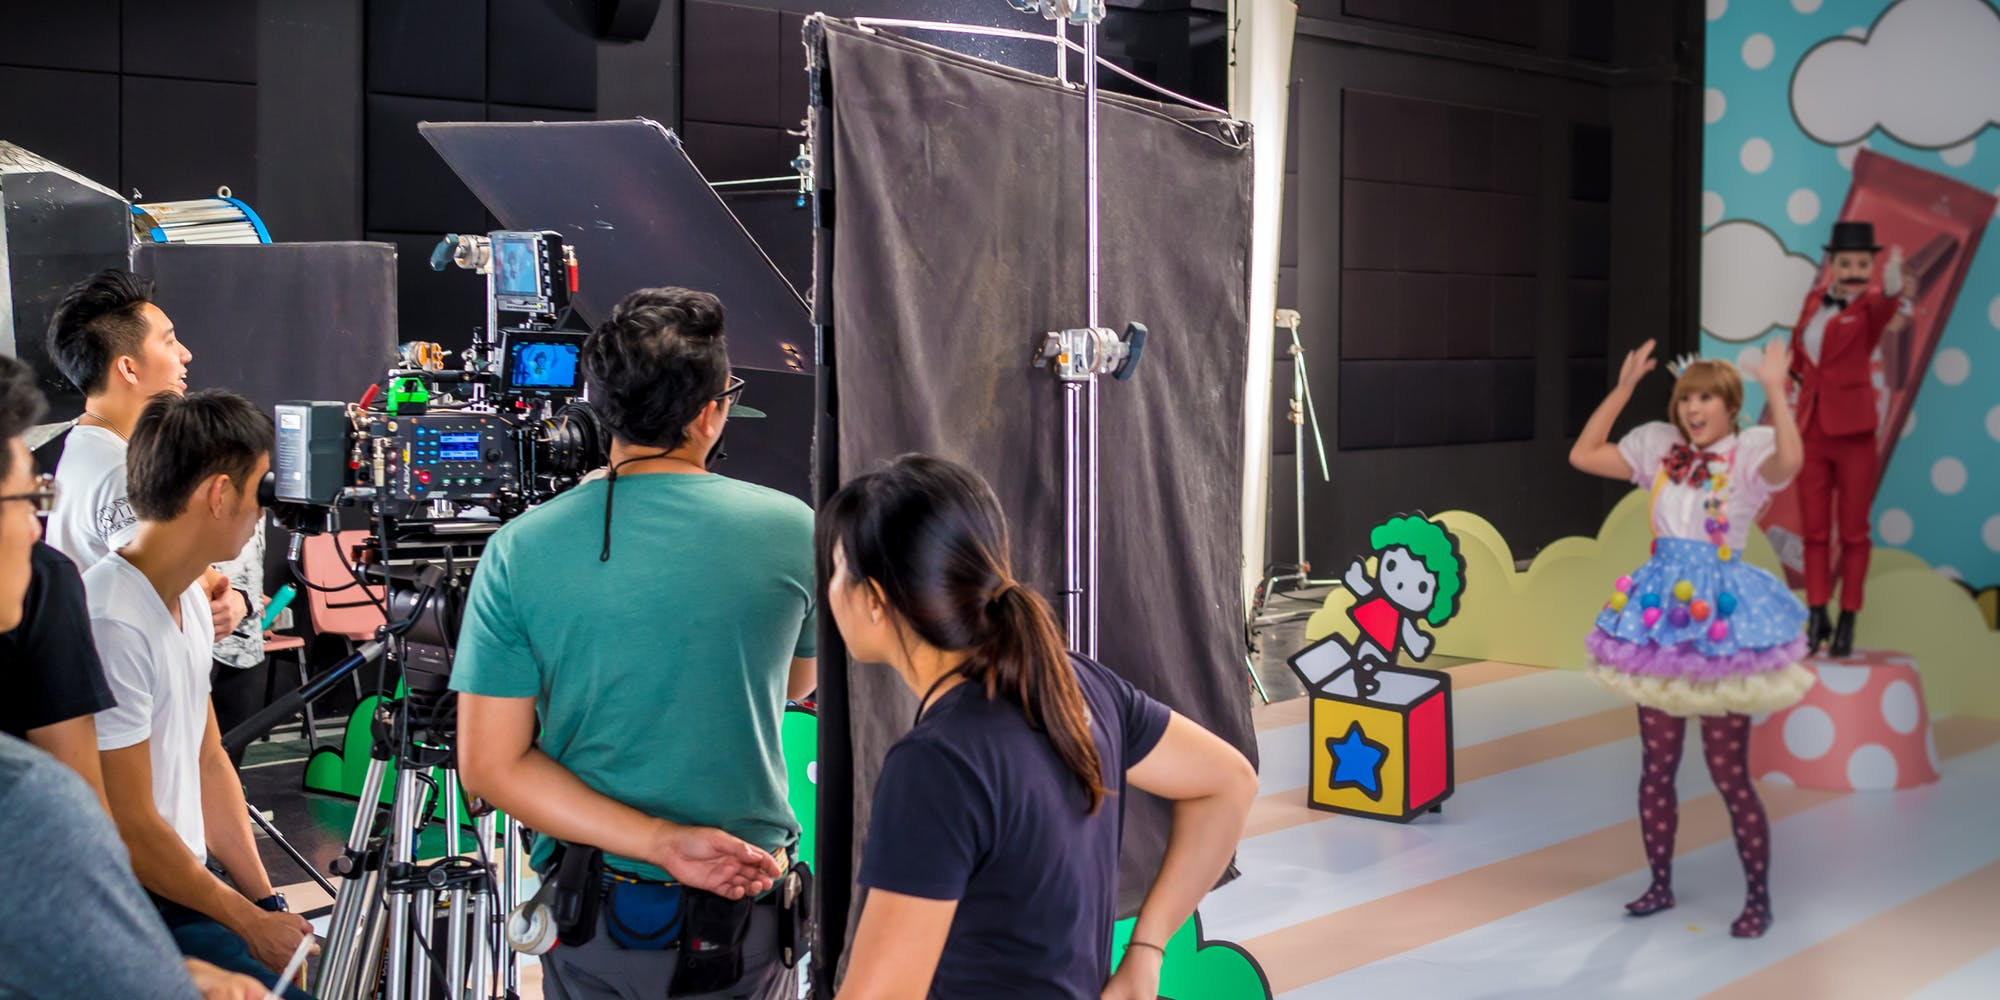 Behind the scenes for Hello Kitty Kit Kat production shoot